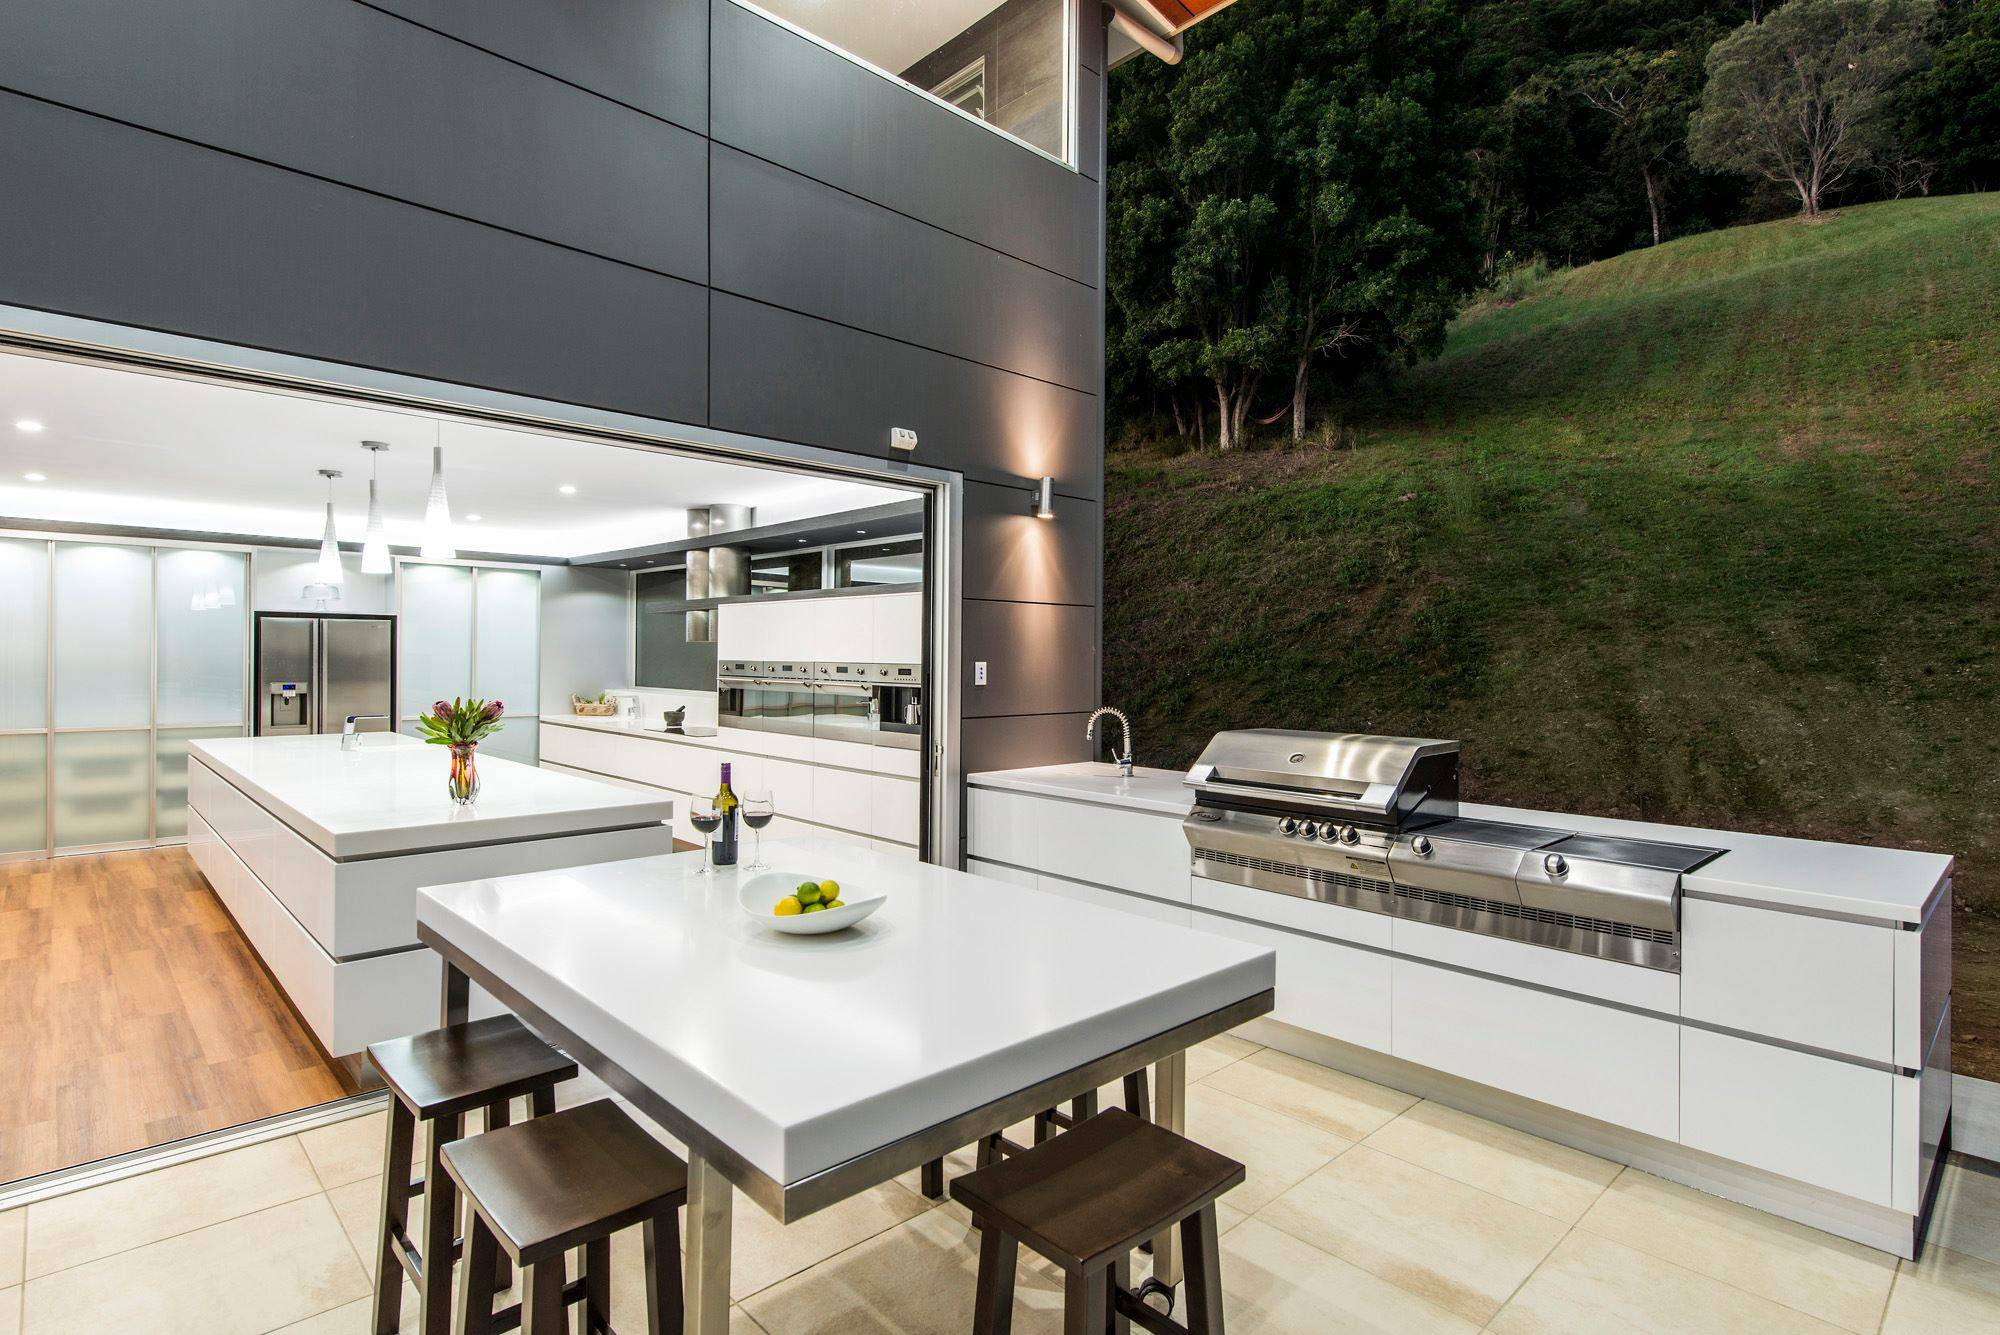 Residential Outdoor Kitchen